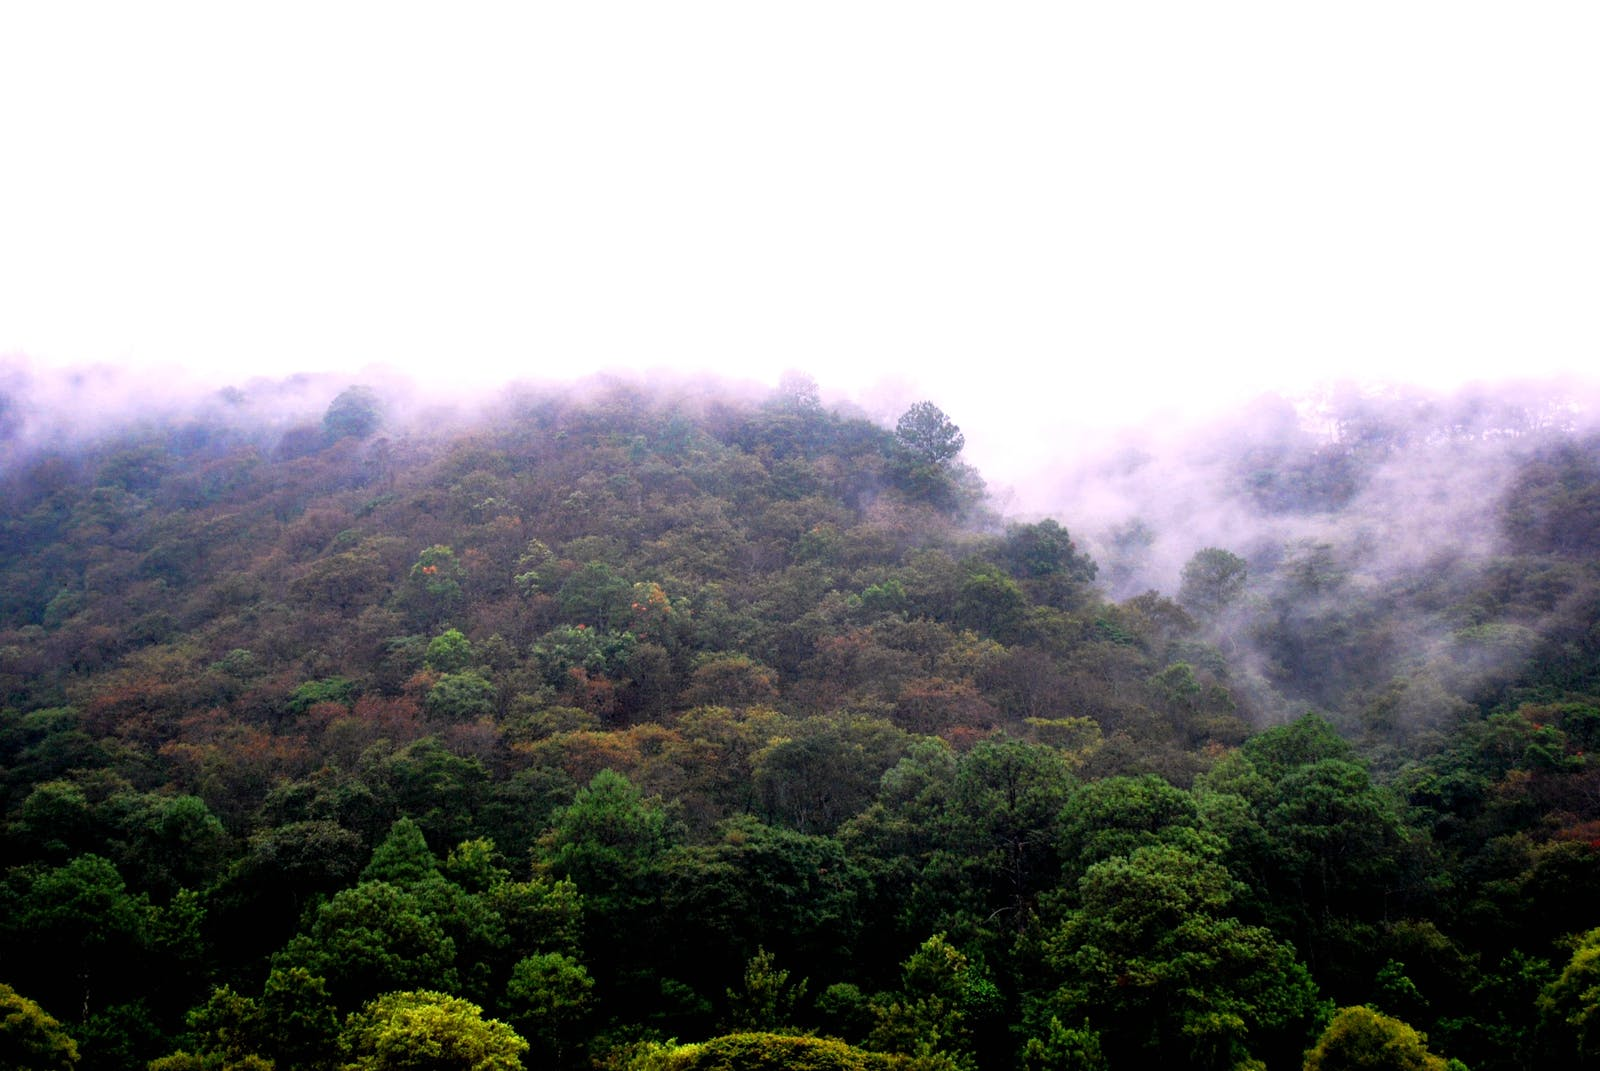 Central American Pine-Oak Forests